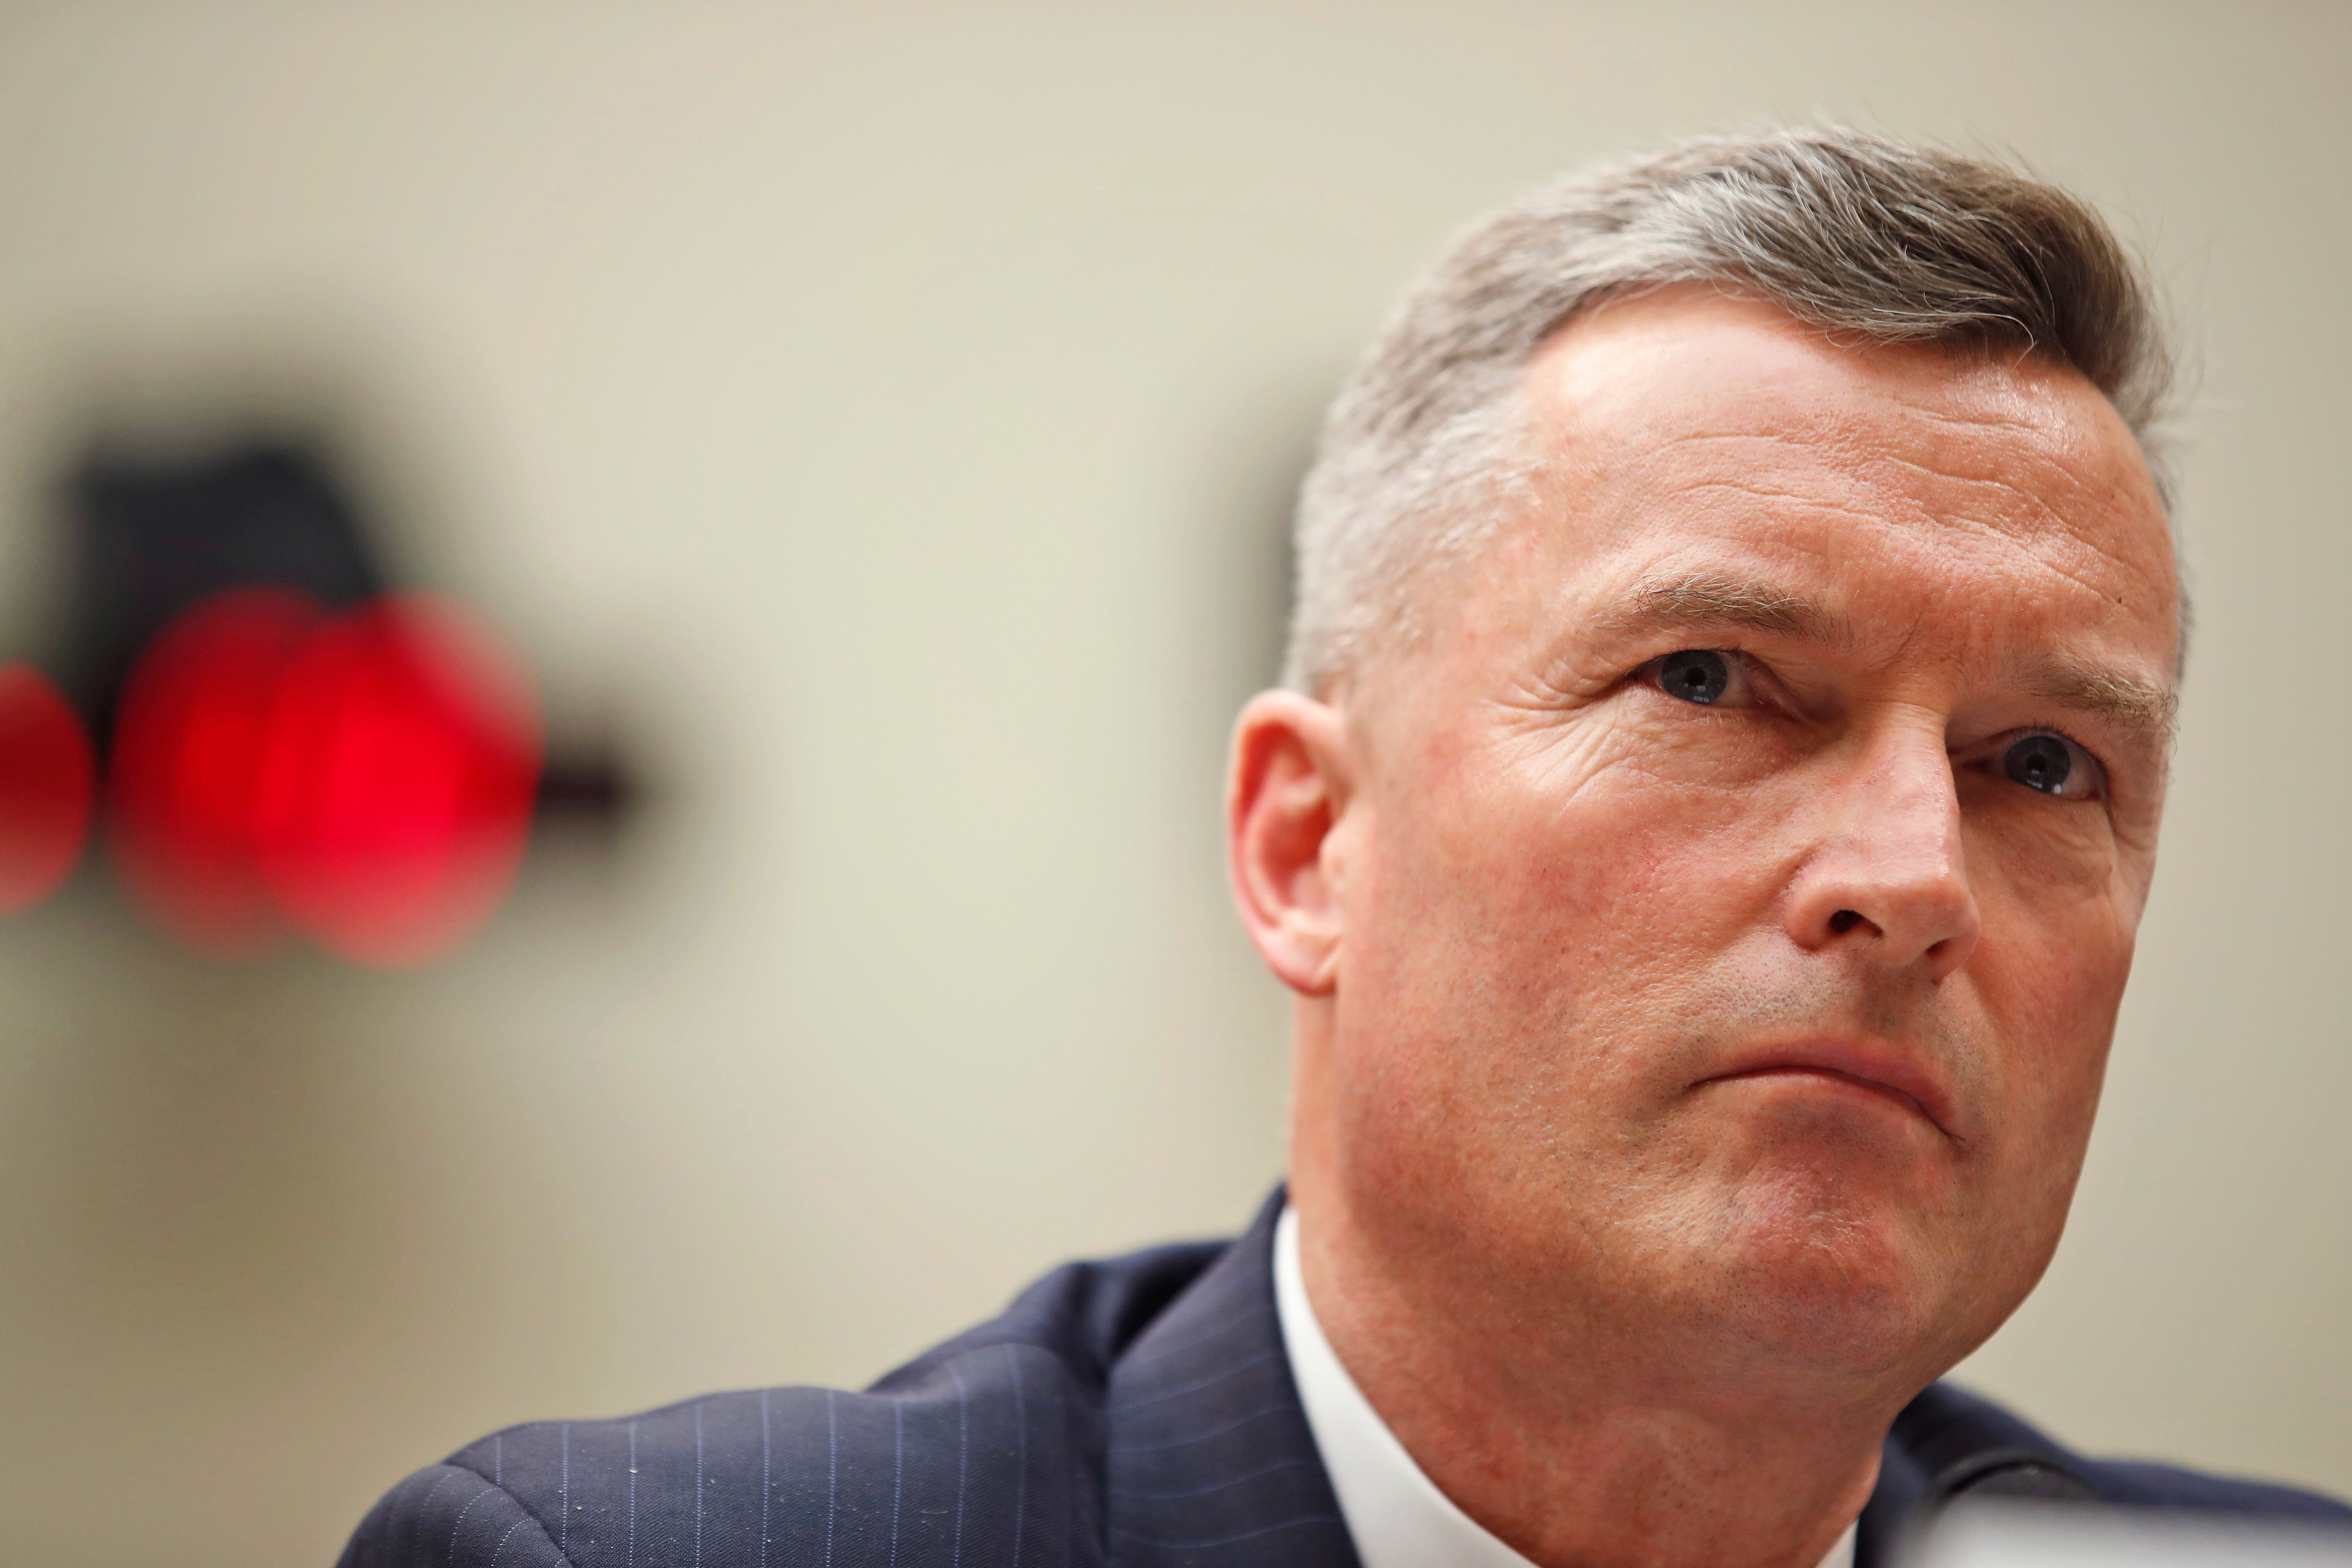 Thomas Brandon, the ATF acting director from 2015 to 2019.